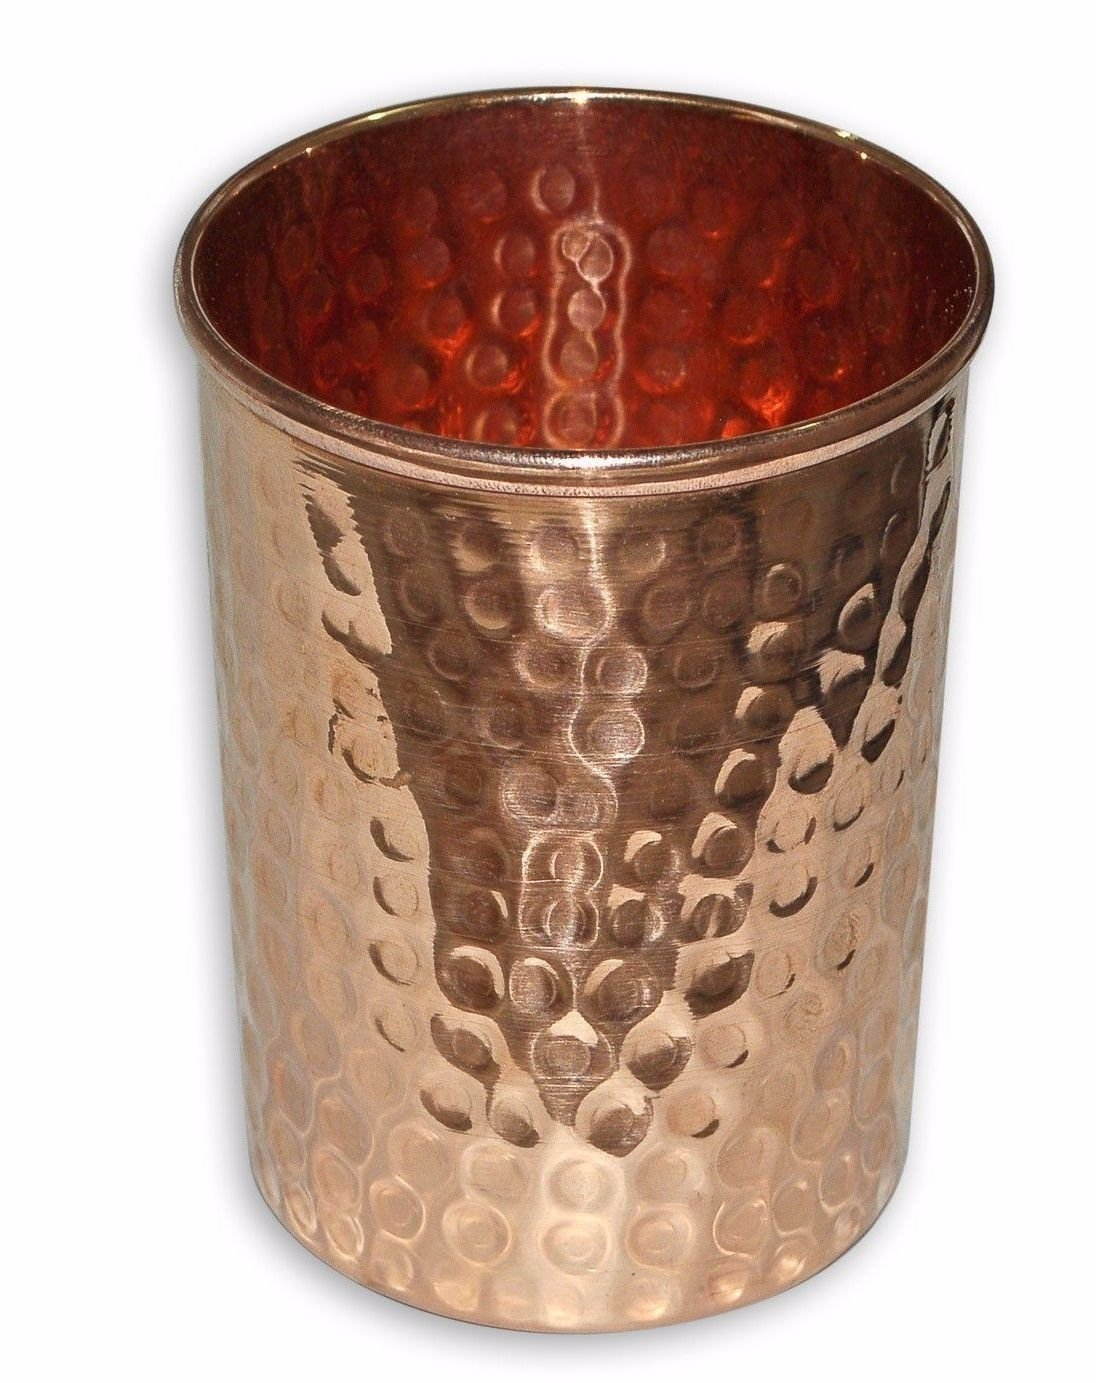 Rastogi Handicrafts Hammered Pure Copper 6.5 ltr. Water Pot Storage Tank - Tumble With Tap Kitchen Home Garden by Rastogi Handicrafts (Image #1)